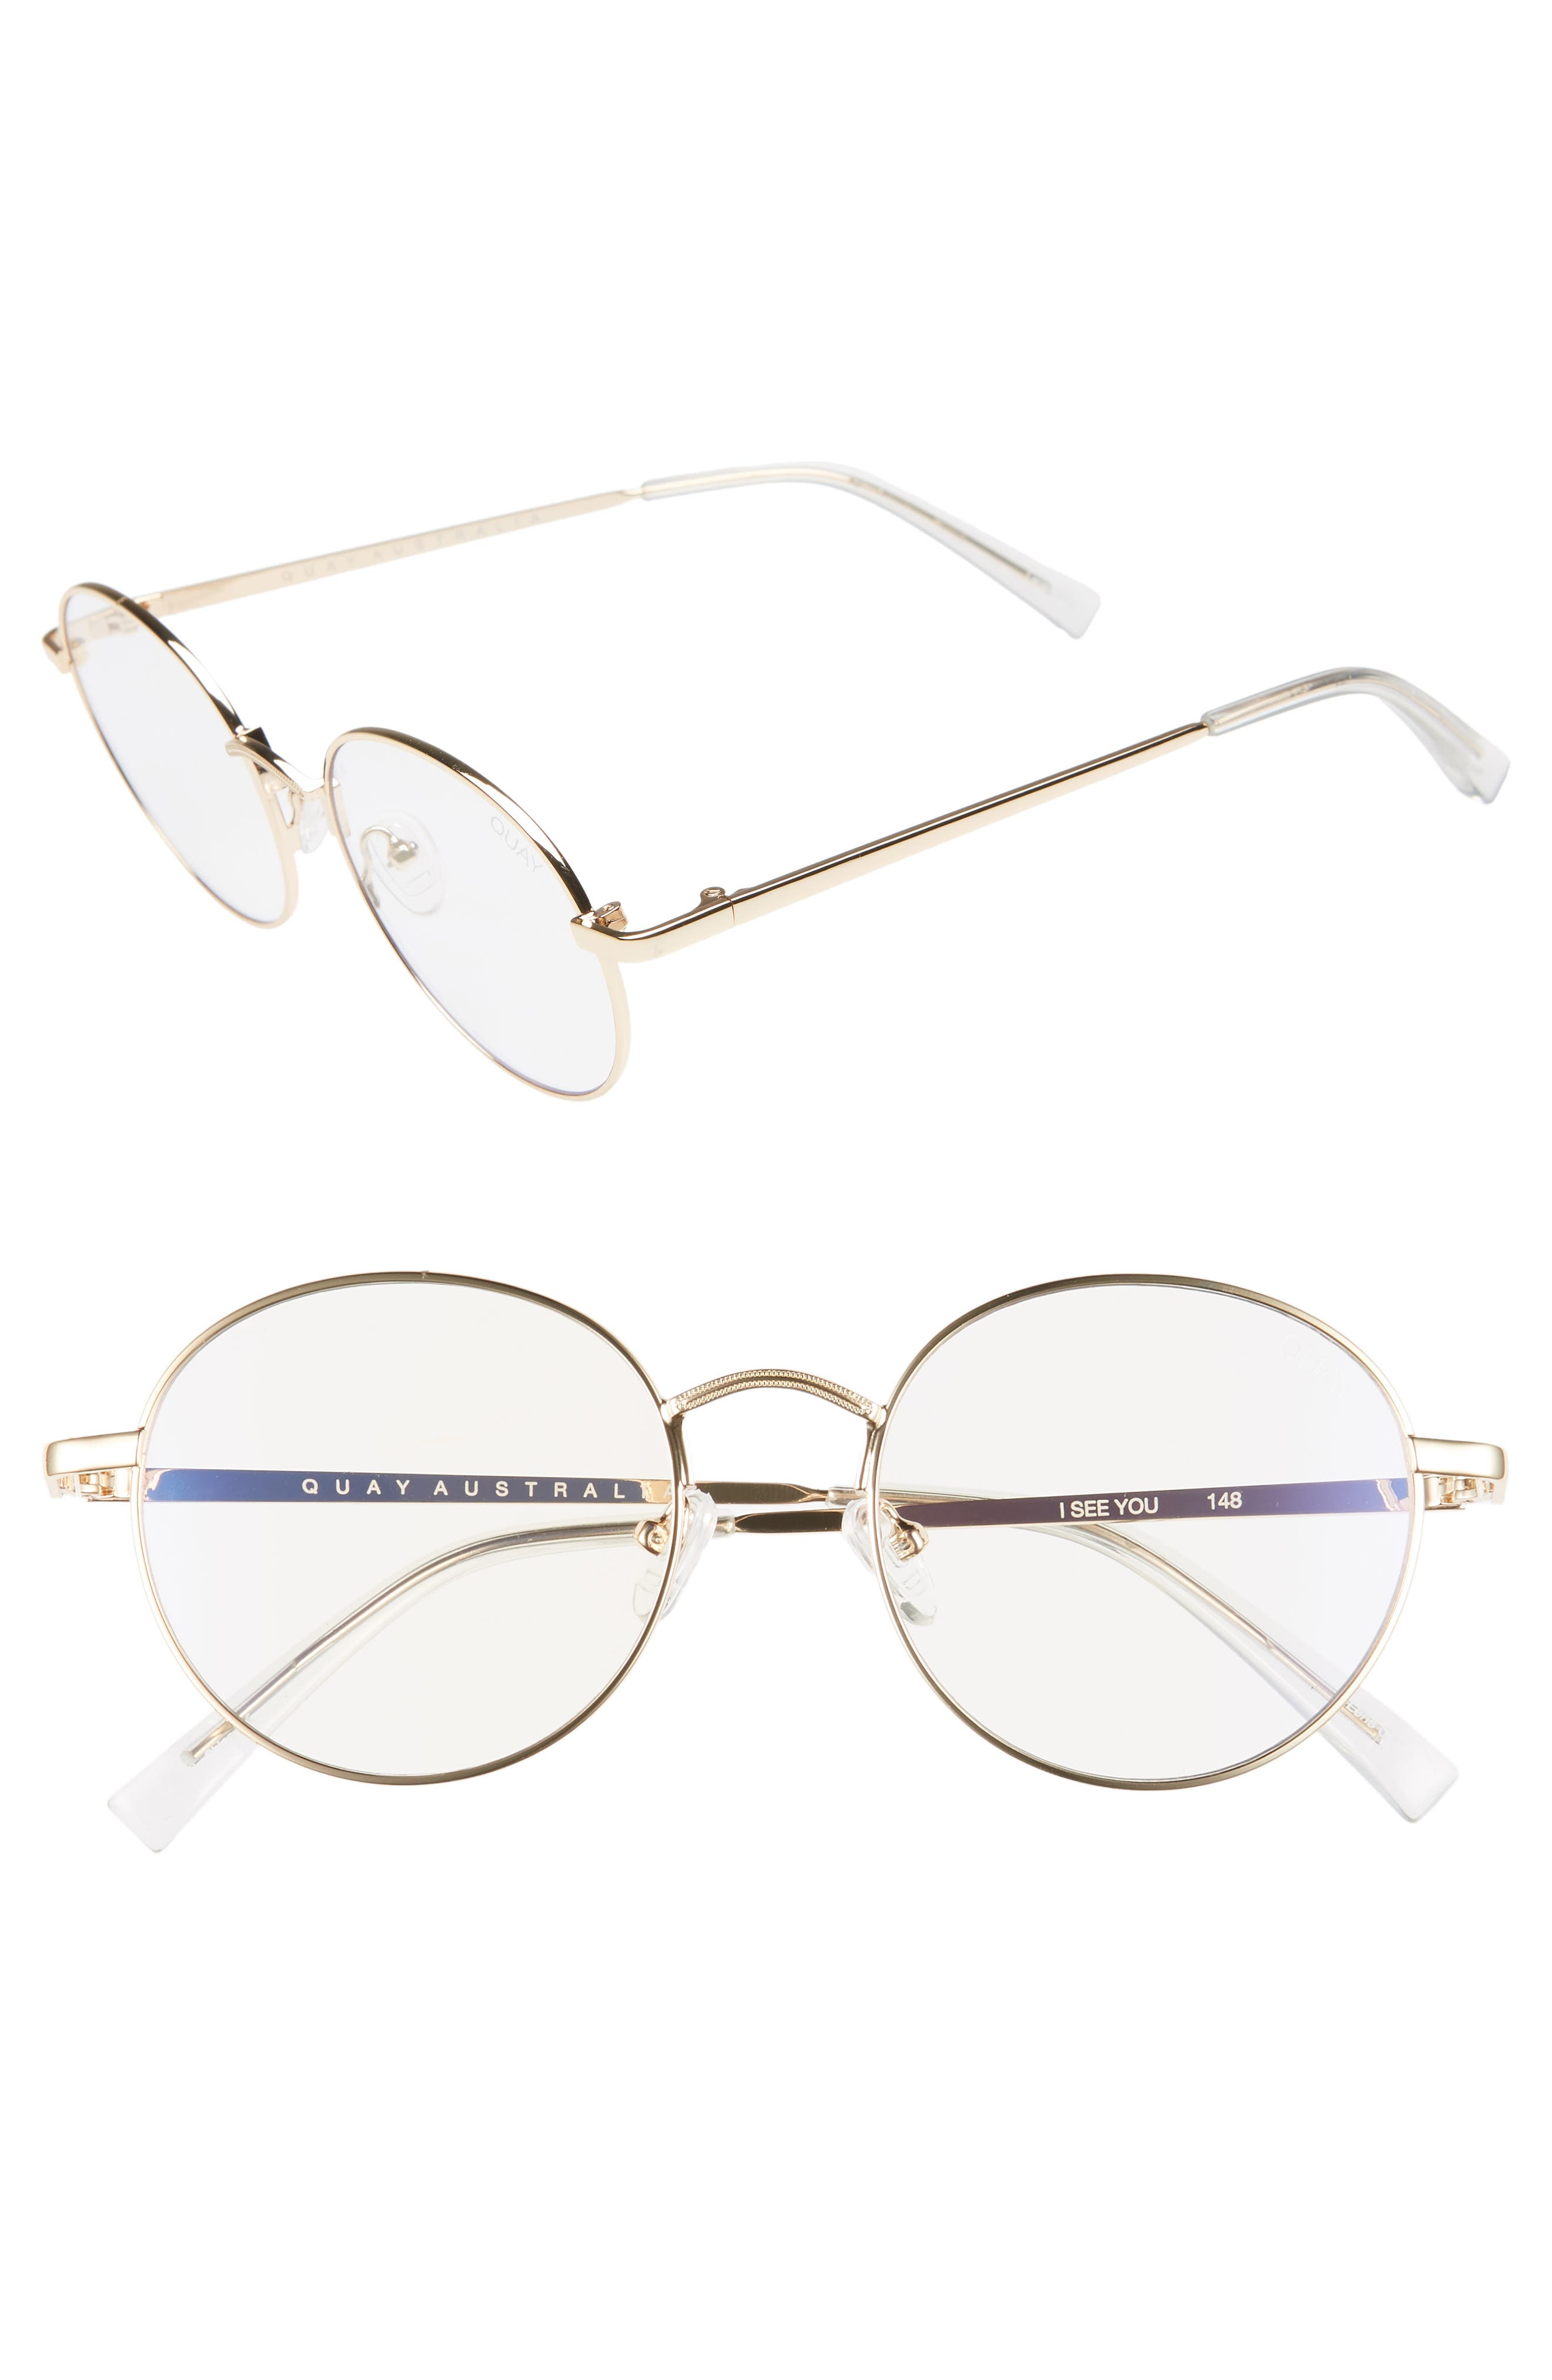 I See You 49mm Round Fashion Glasses,                         Main,                         color, 710